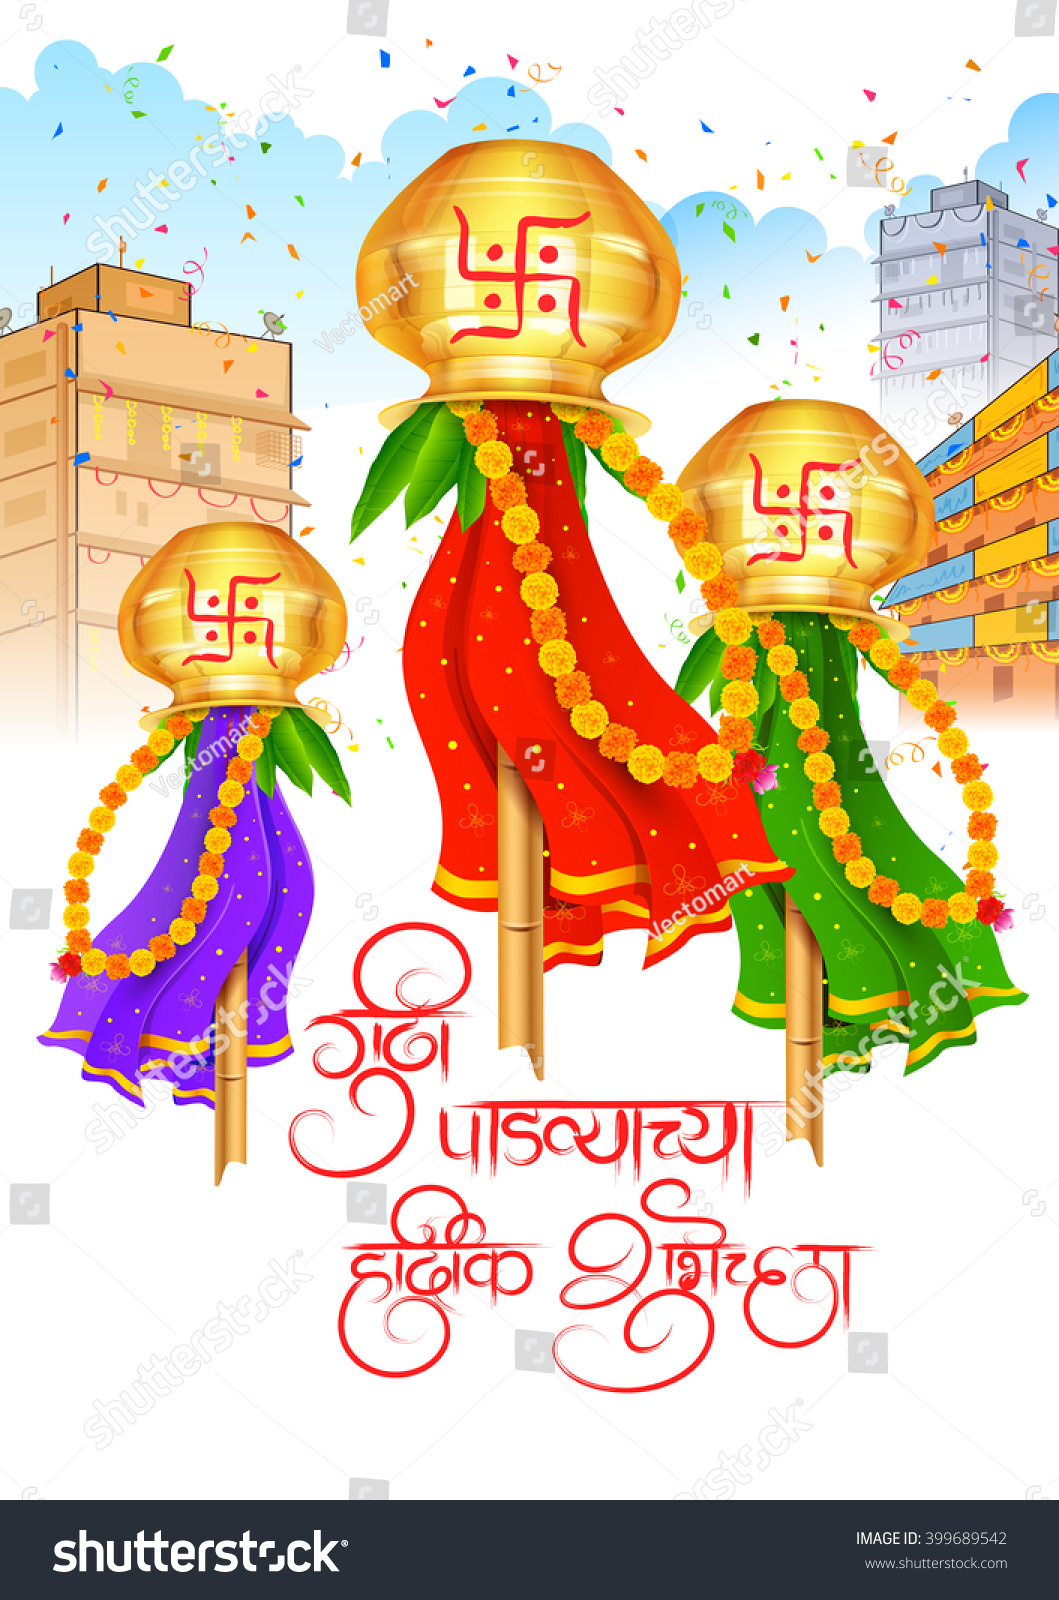 Illustration gudi padwa lunar new year stock vector 399689542 illustration of gudi padwa lunar new year celebration of india with message in marathi kristyandbryce Gallery